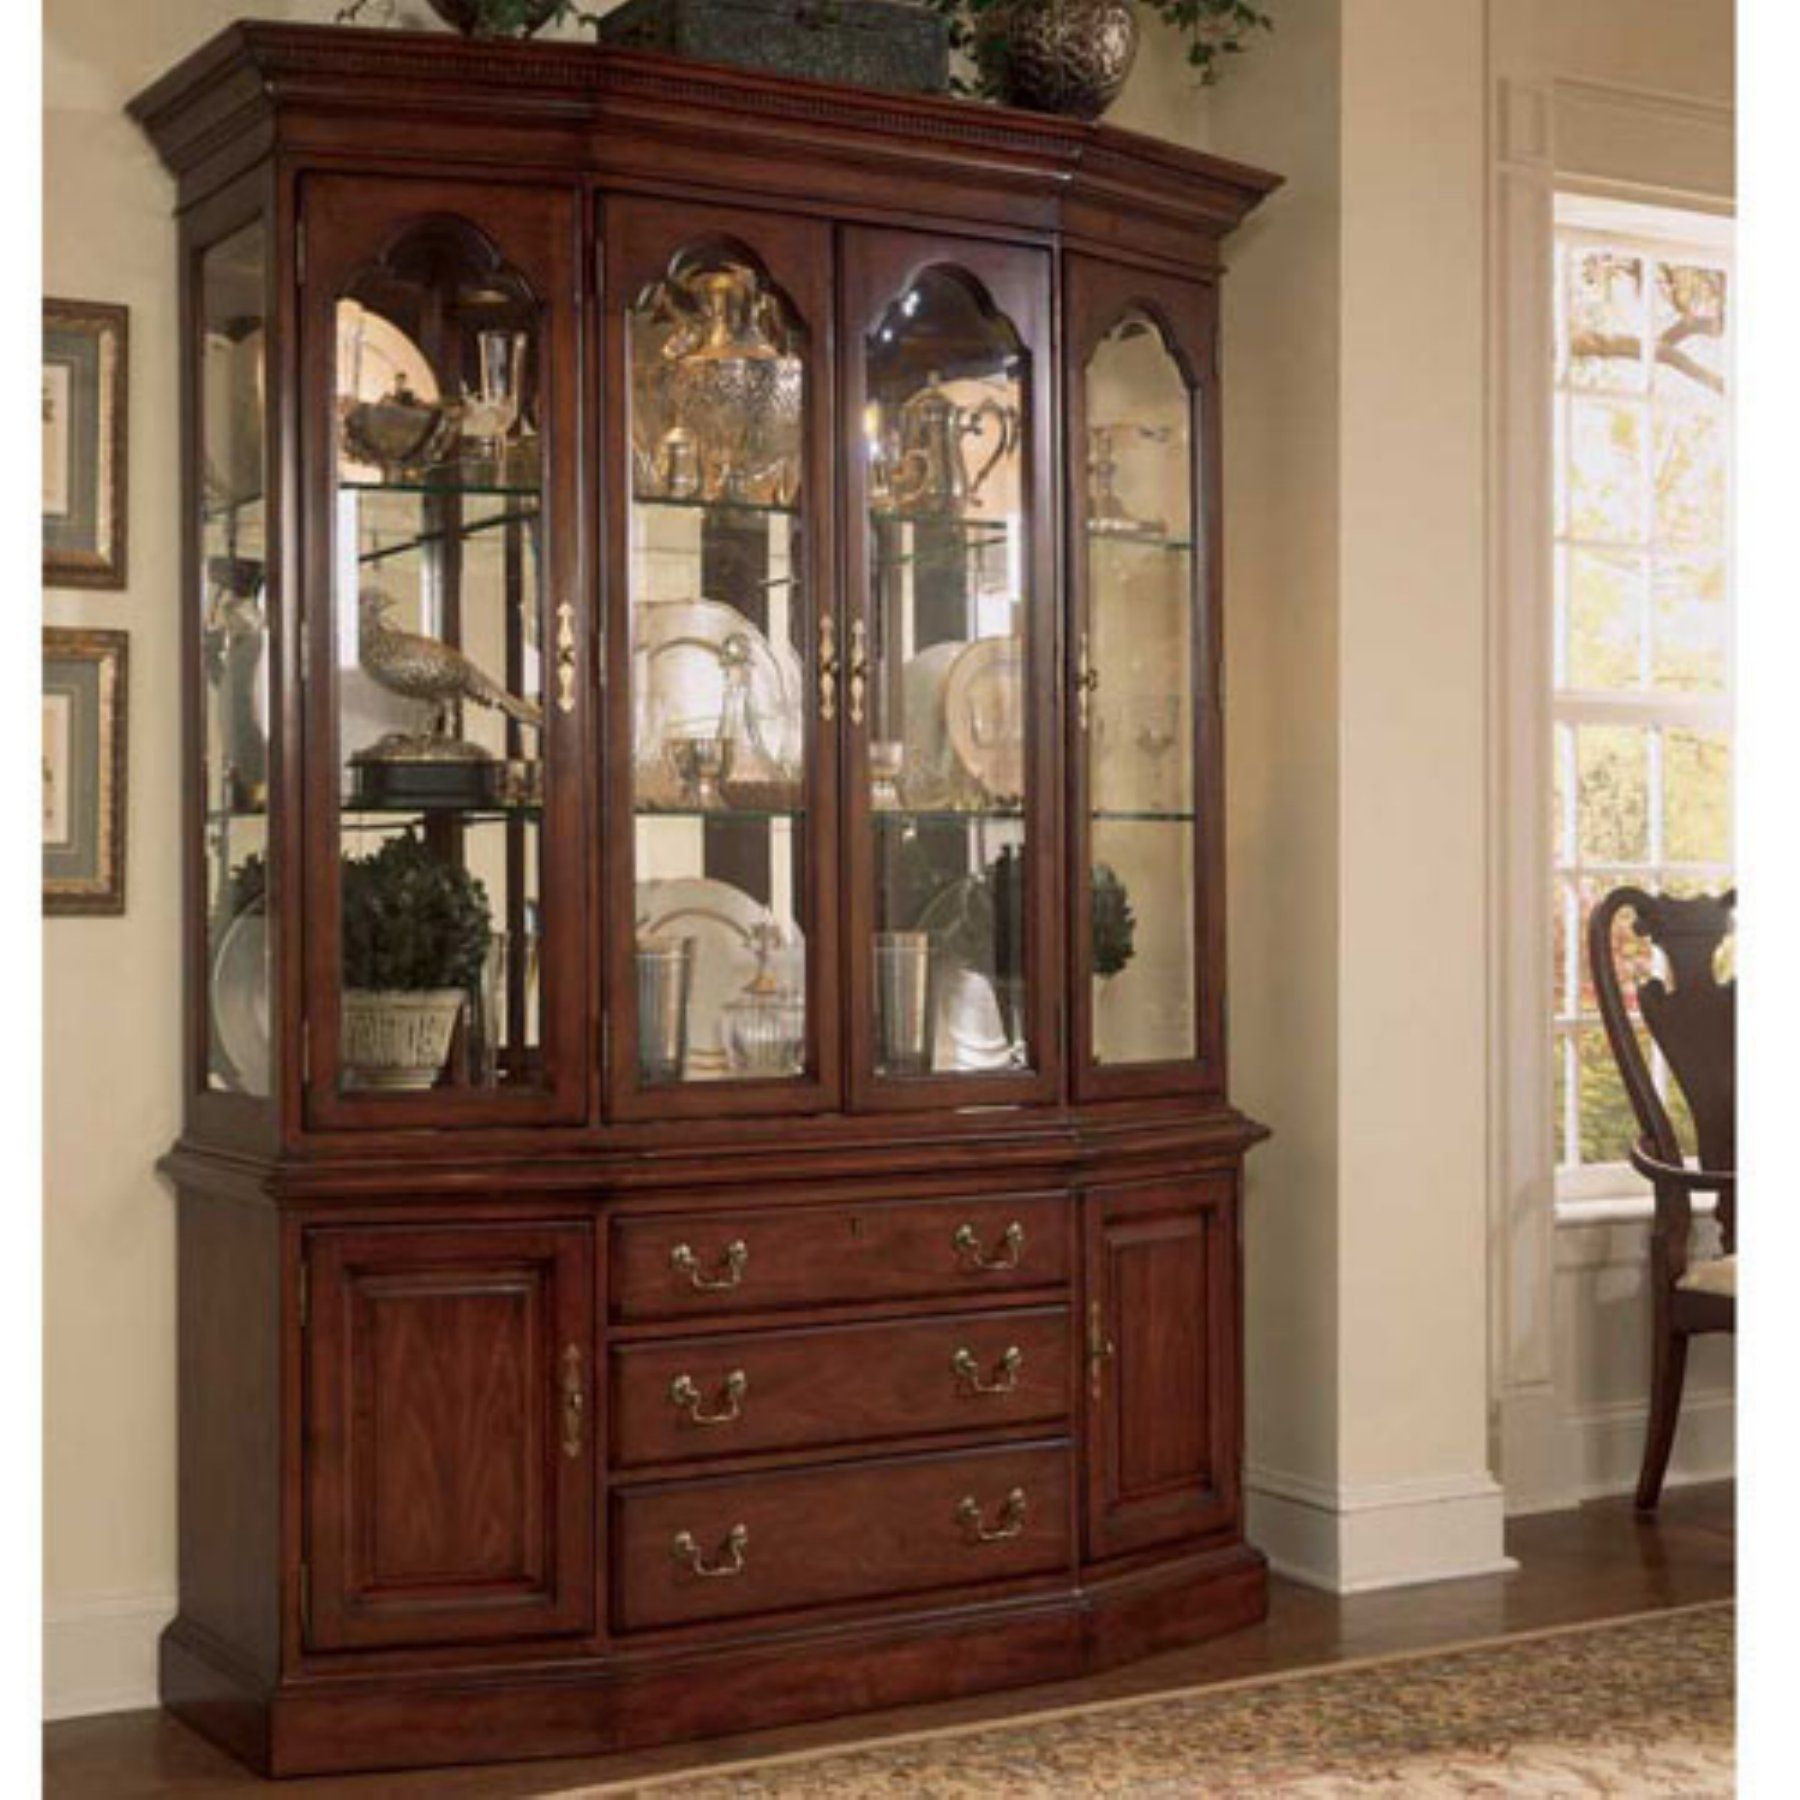 American Drew Cherry Grove Canted China Cabinet ADL1021